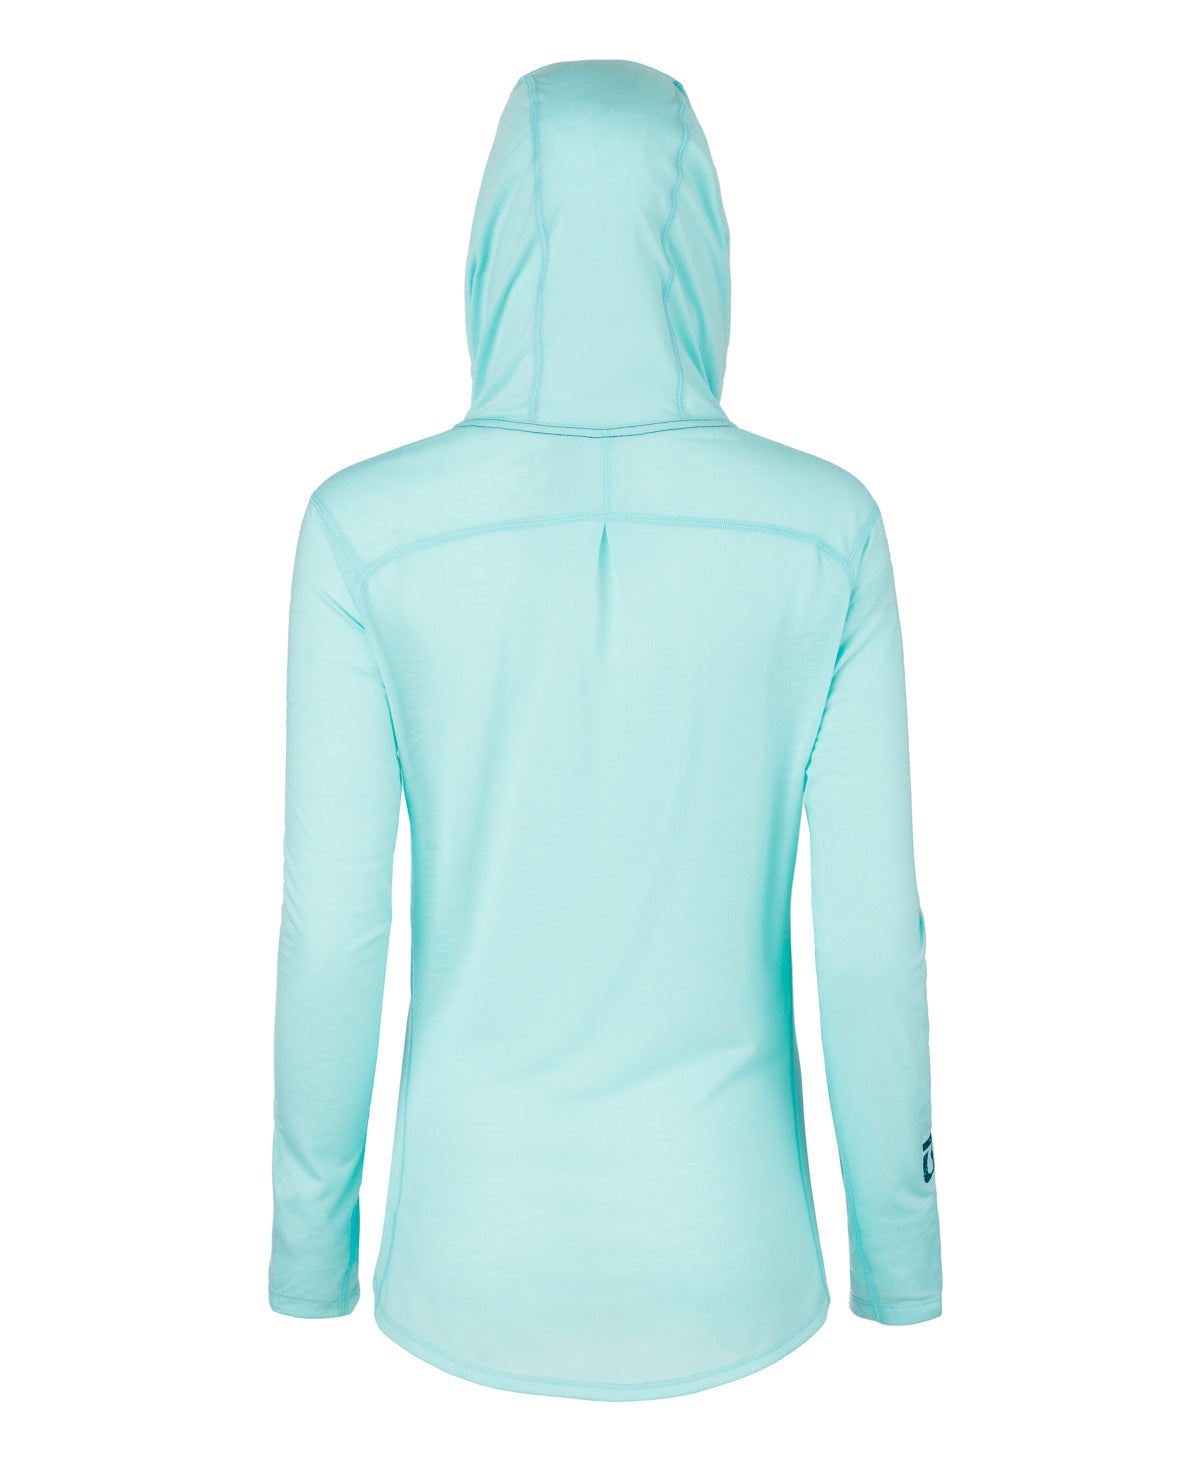 Women's Solstice Hoody - Past Season